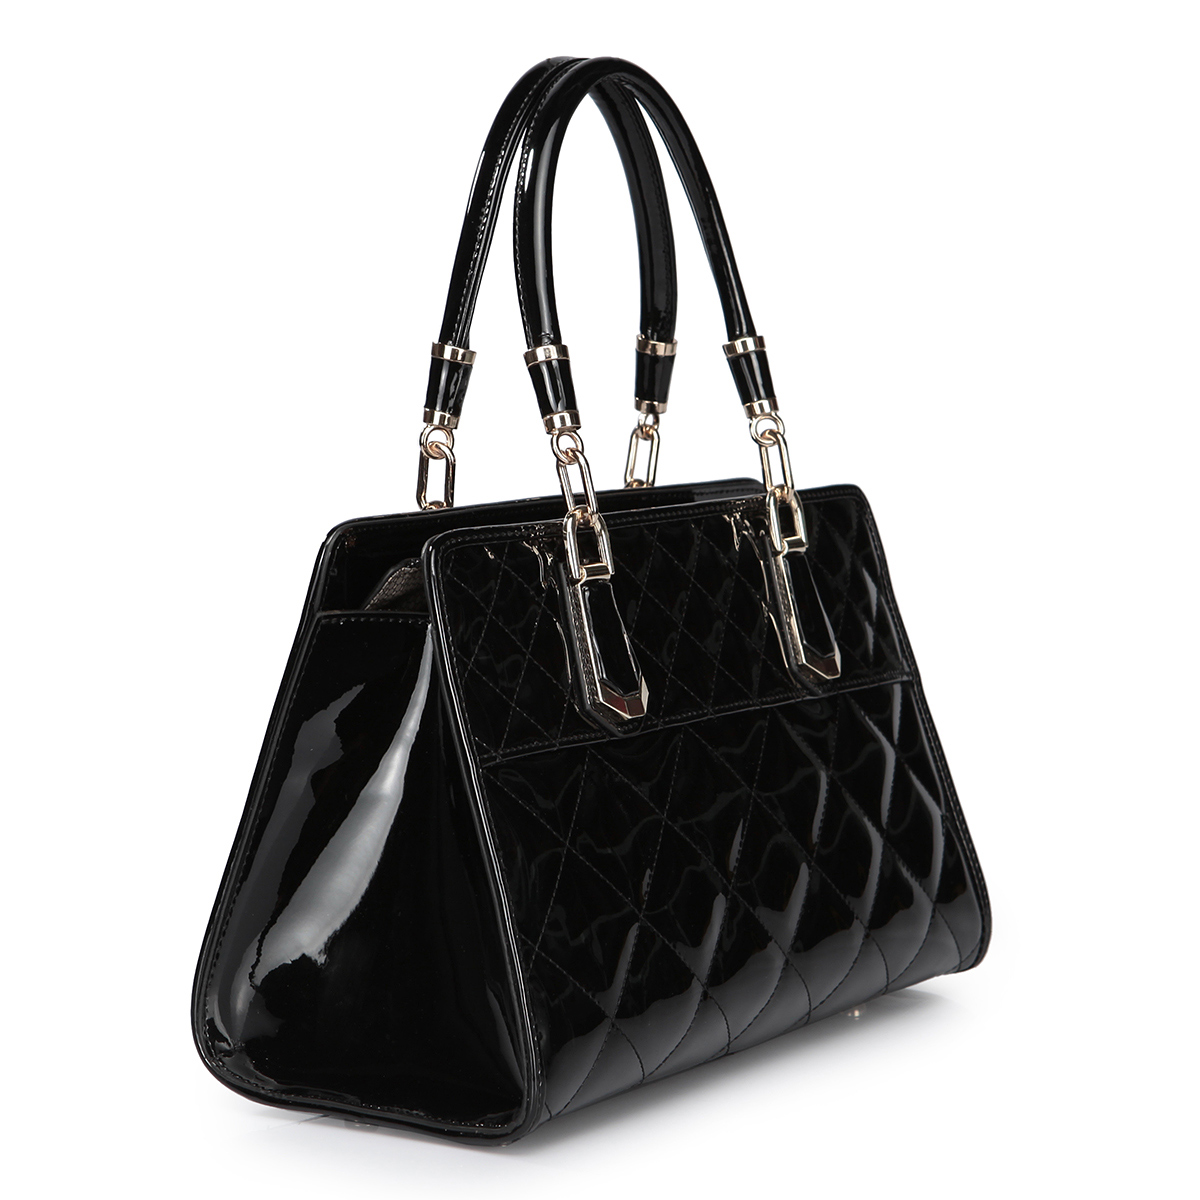 Shop black patent tote at Neiman Marcus, where you will find free shipping on the latest in fashion from top designers.